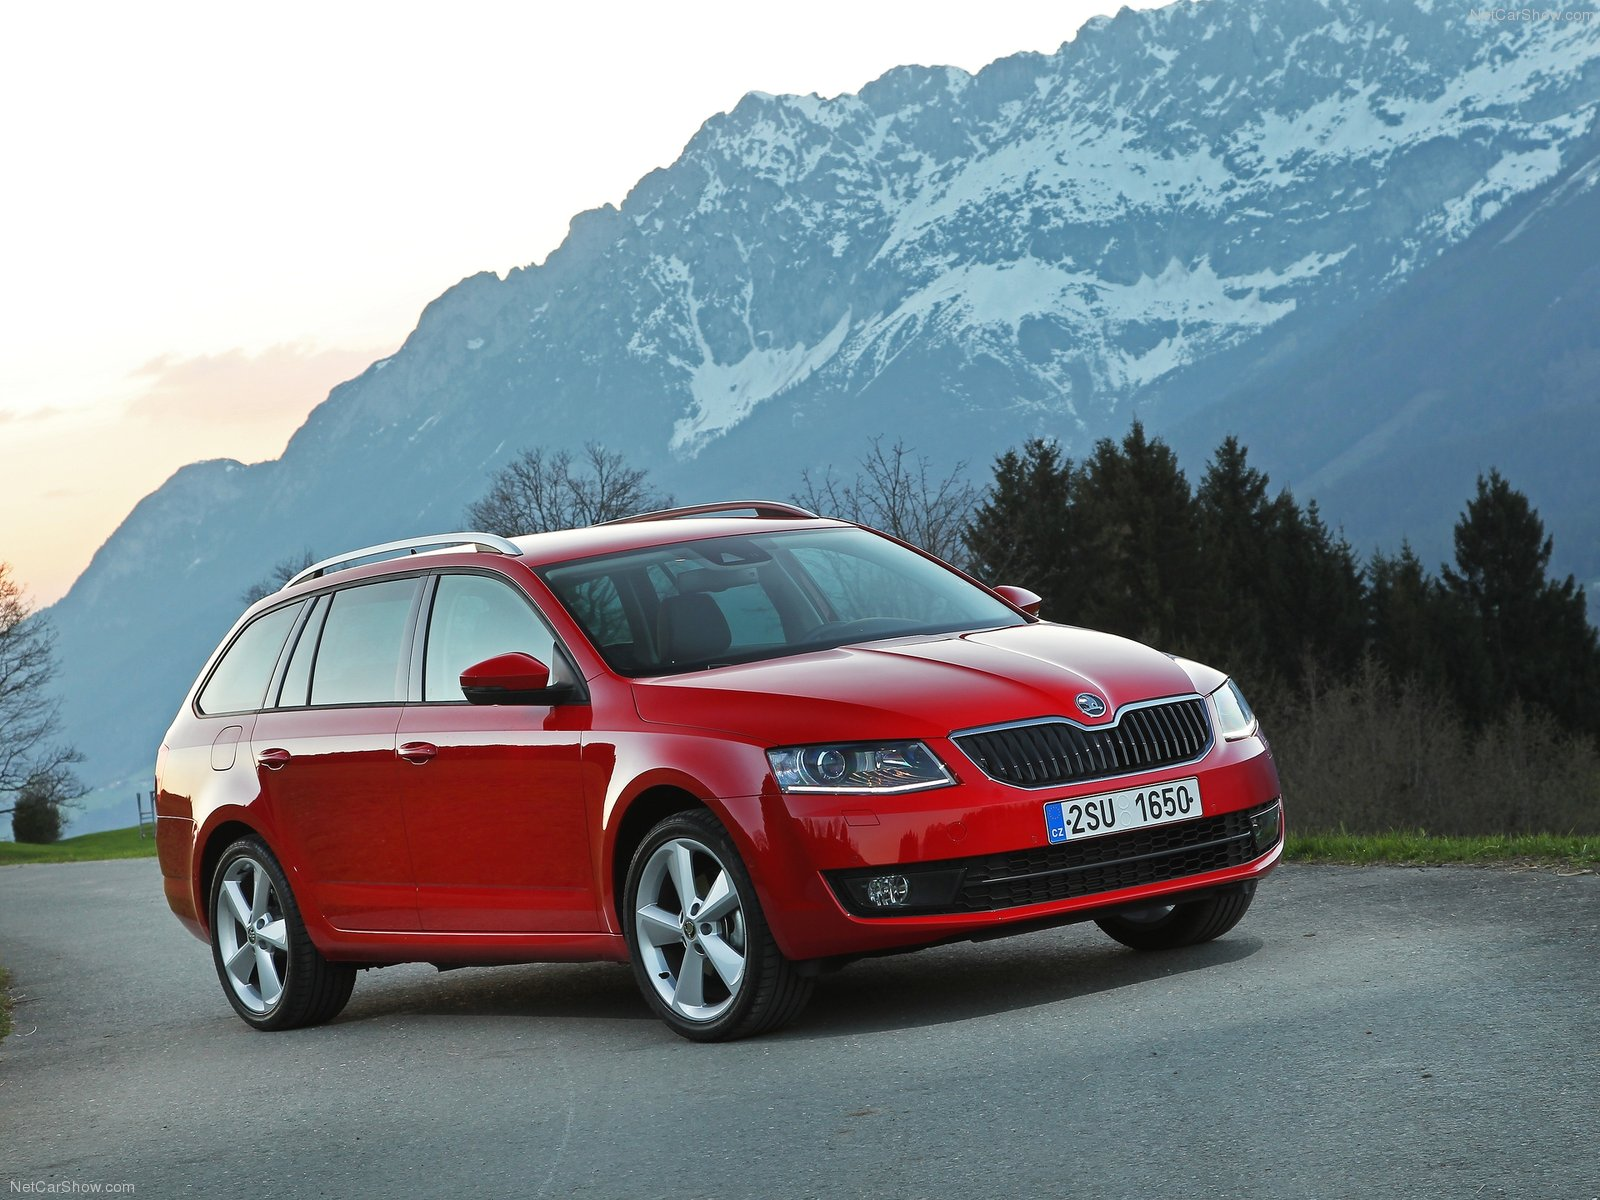 2014 skoda octavia combi review spec release date picture. Black Bedroom Furniture Sets. Home Design Ideas